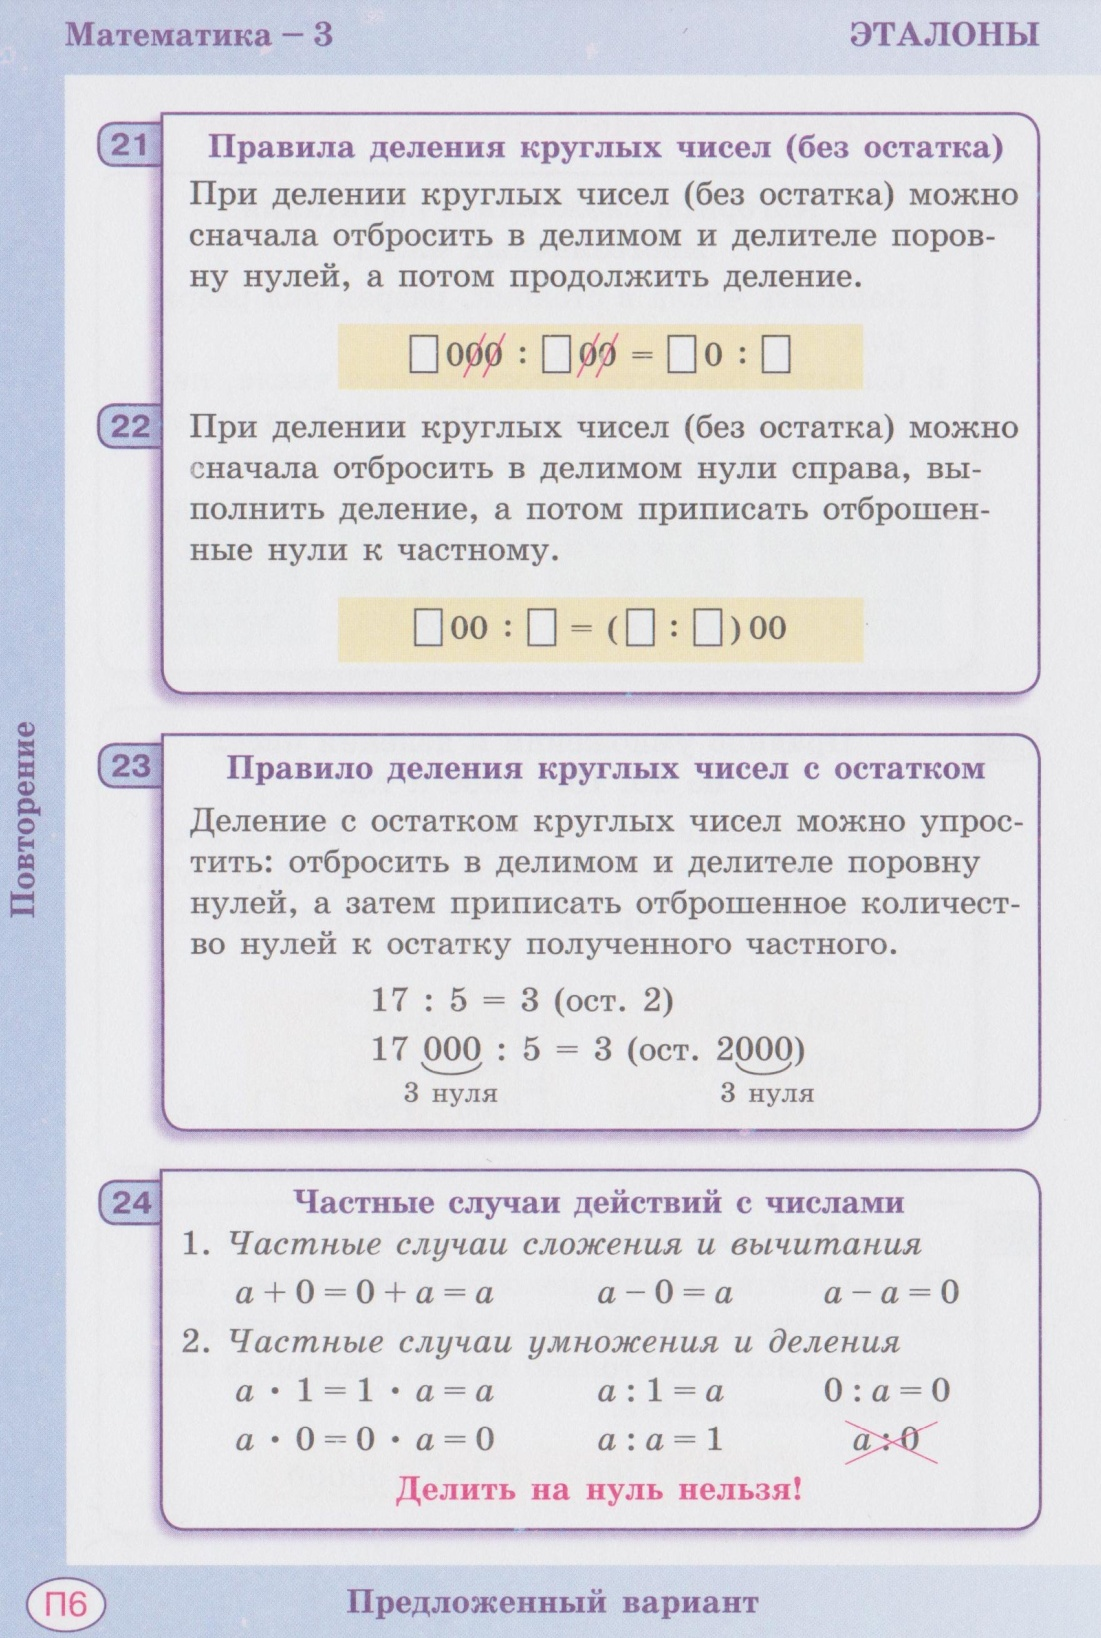 C:\Users\Настя\Pictures\2012-09-08 6\6 001.jpg